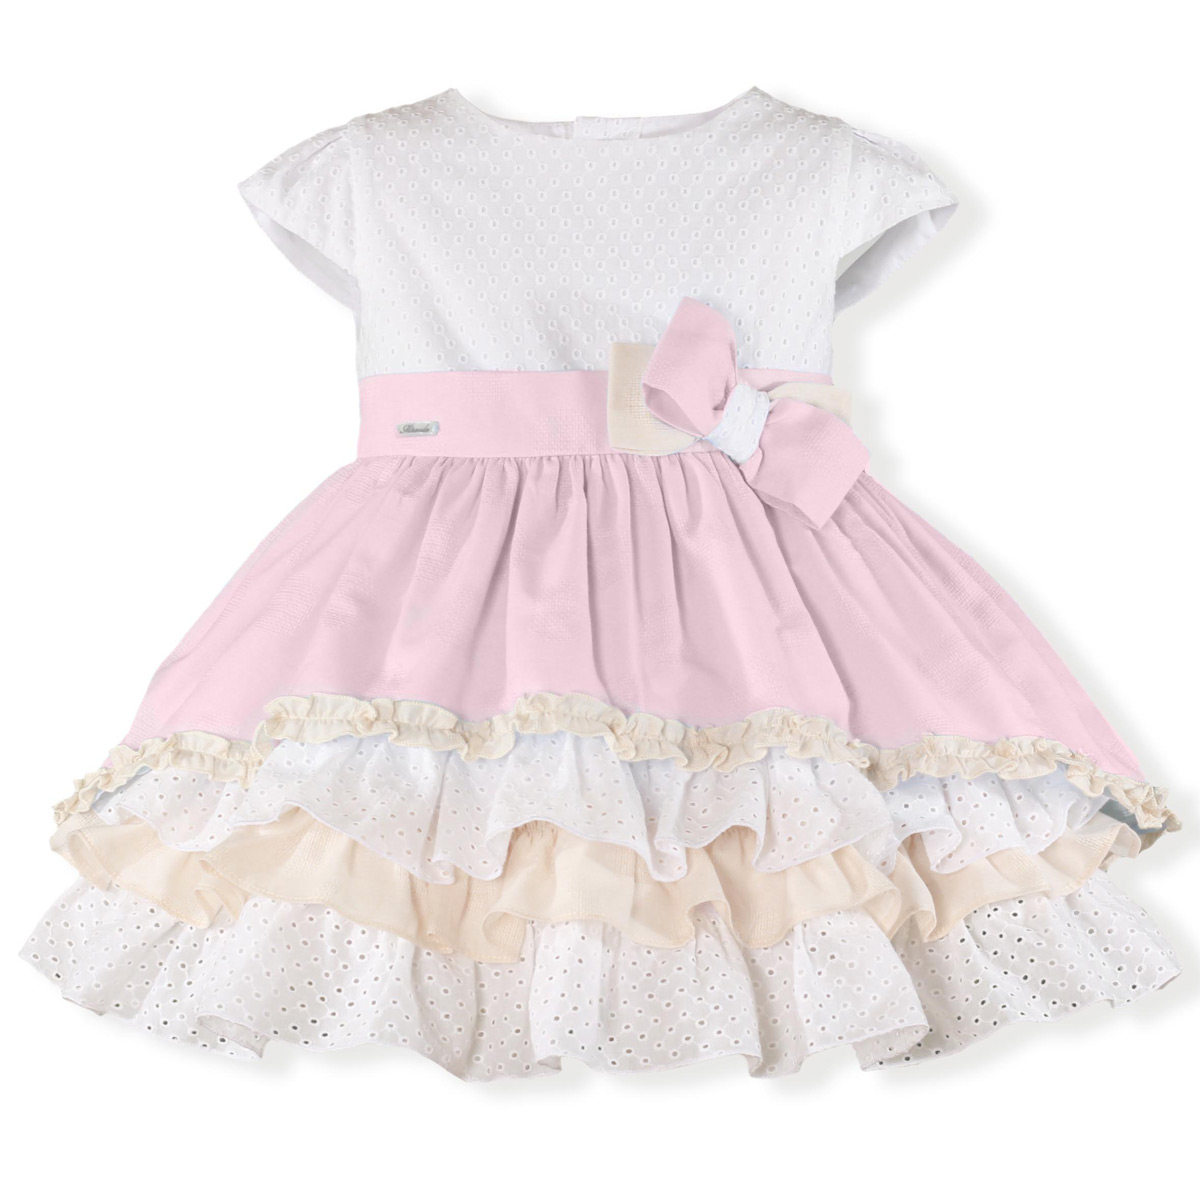 1d48b57b8 Miranda Spring Summer Girls Pink White Frilly Dress Large Bow. Double tap  to zoom